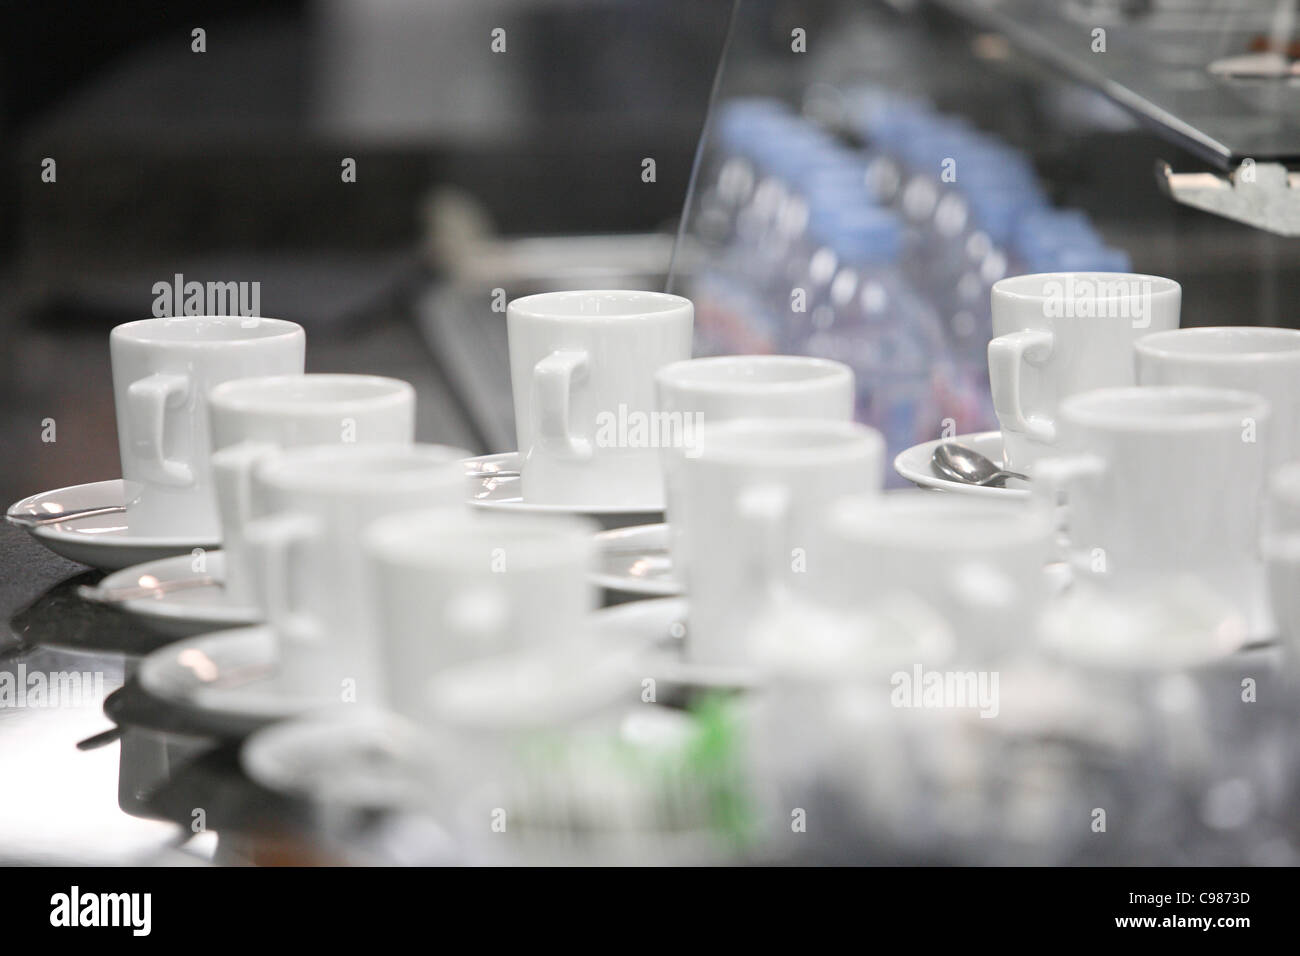 Cups and saucers on counter top - Stock Image